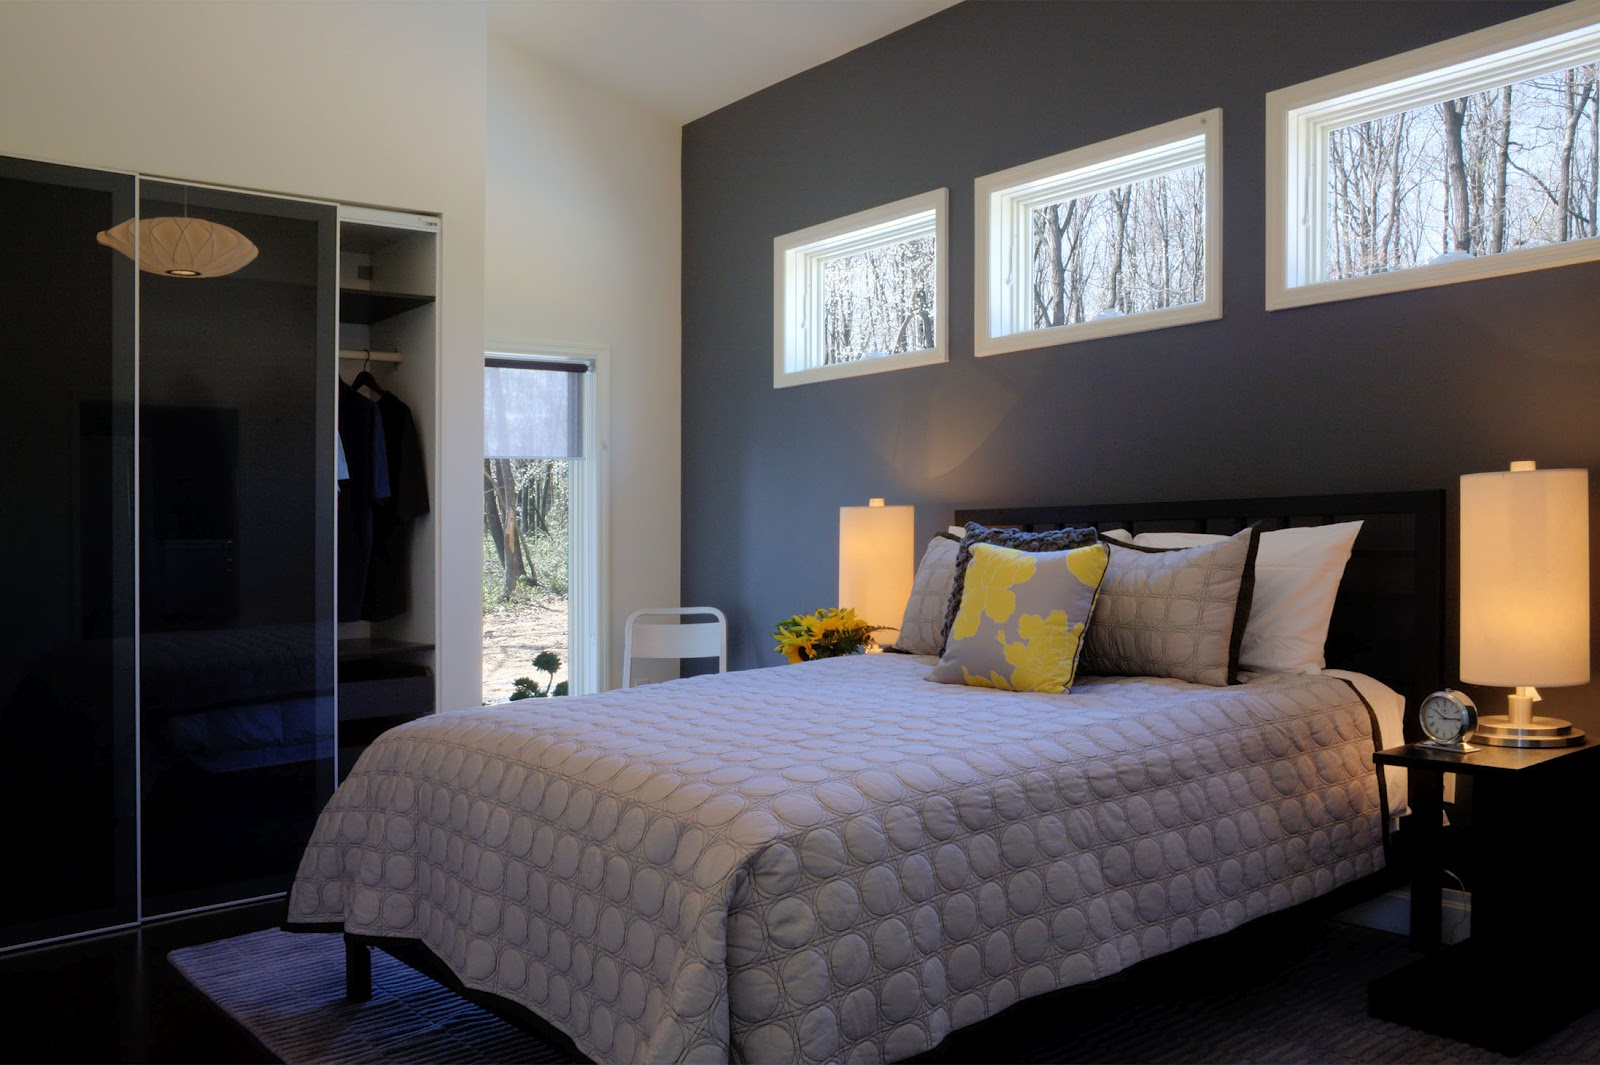 life and architecture designing custom closets using the ikea pax system. Black Bedroom Furniture Sets. Home Design Ideas